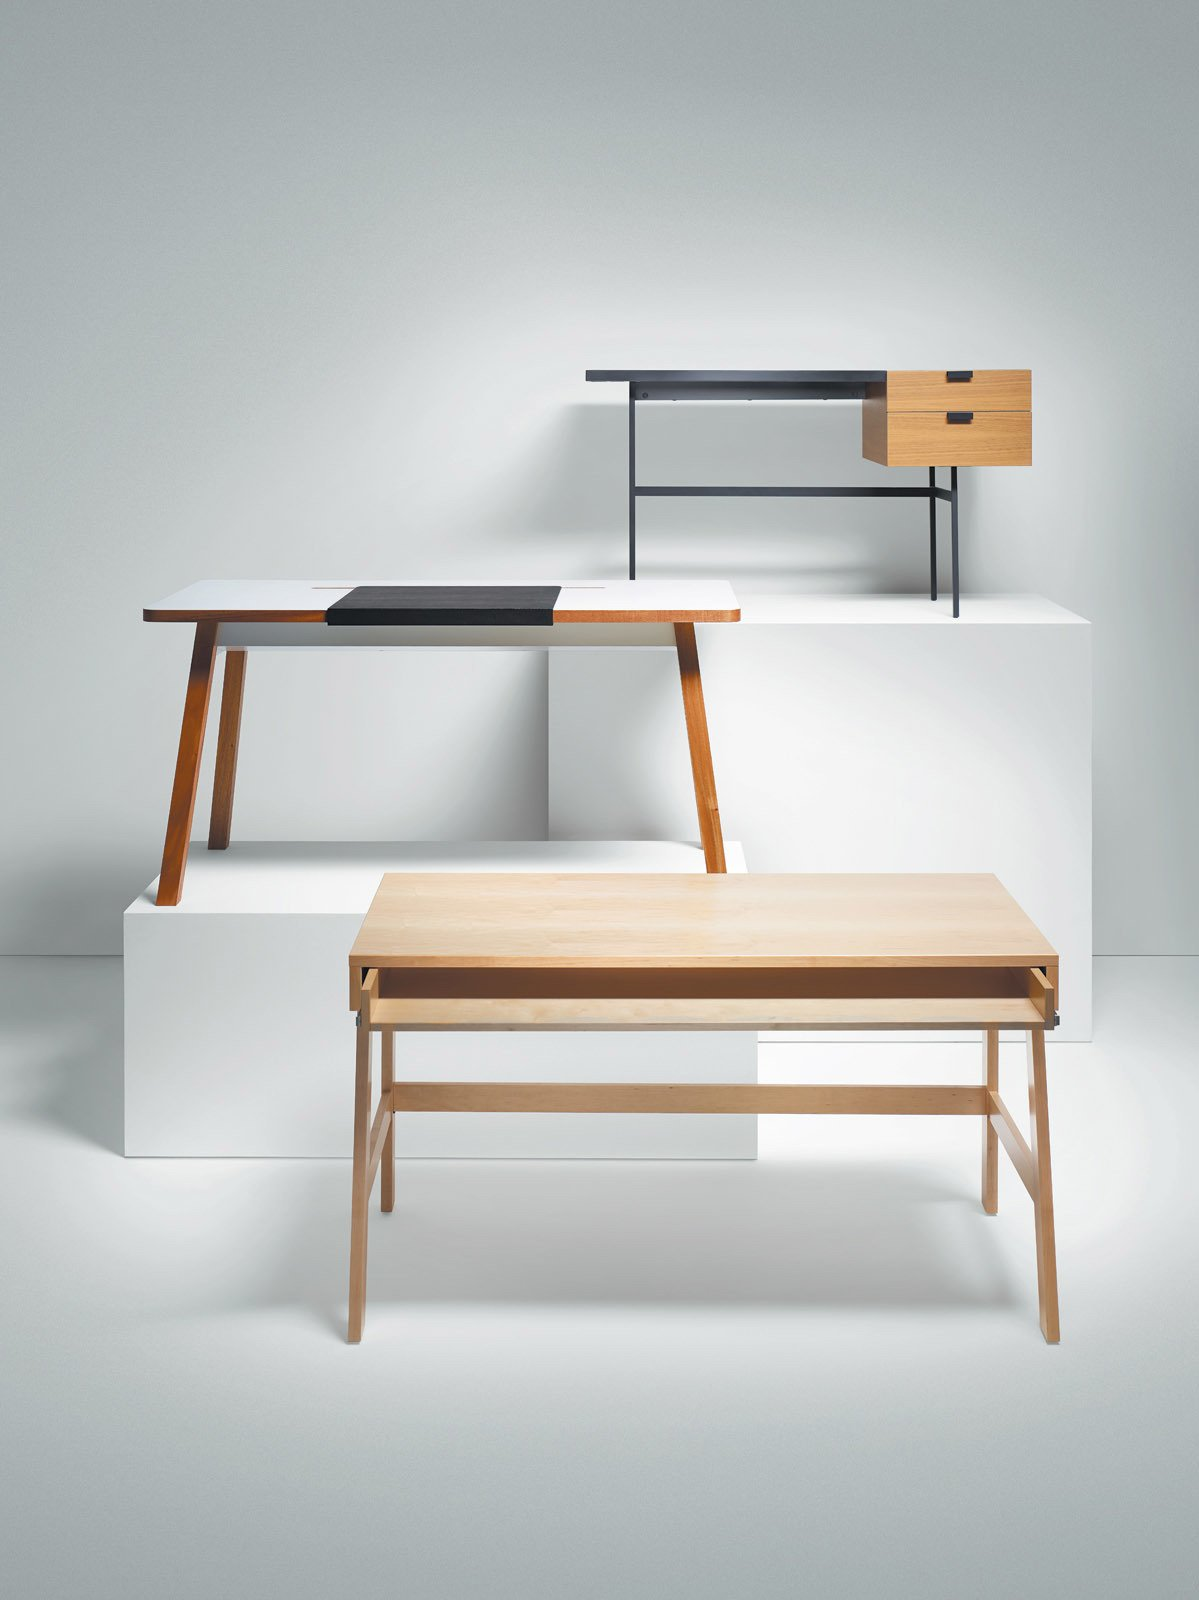 Articles about 6 clever built desks on Dwell.com